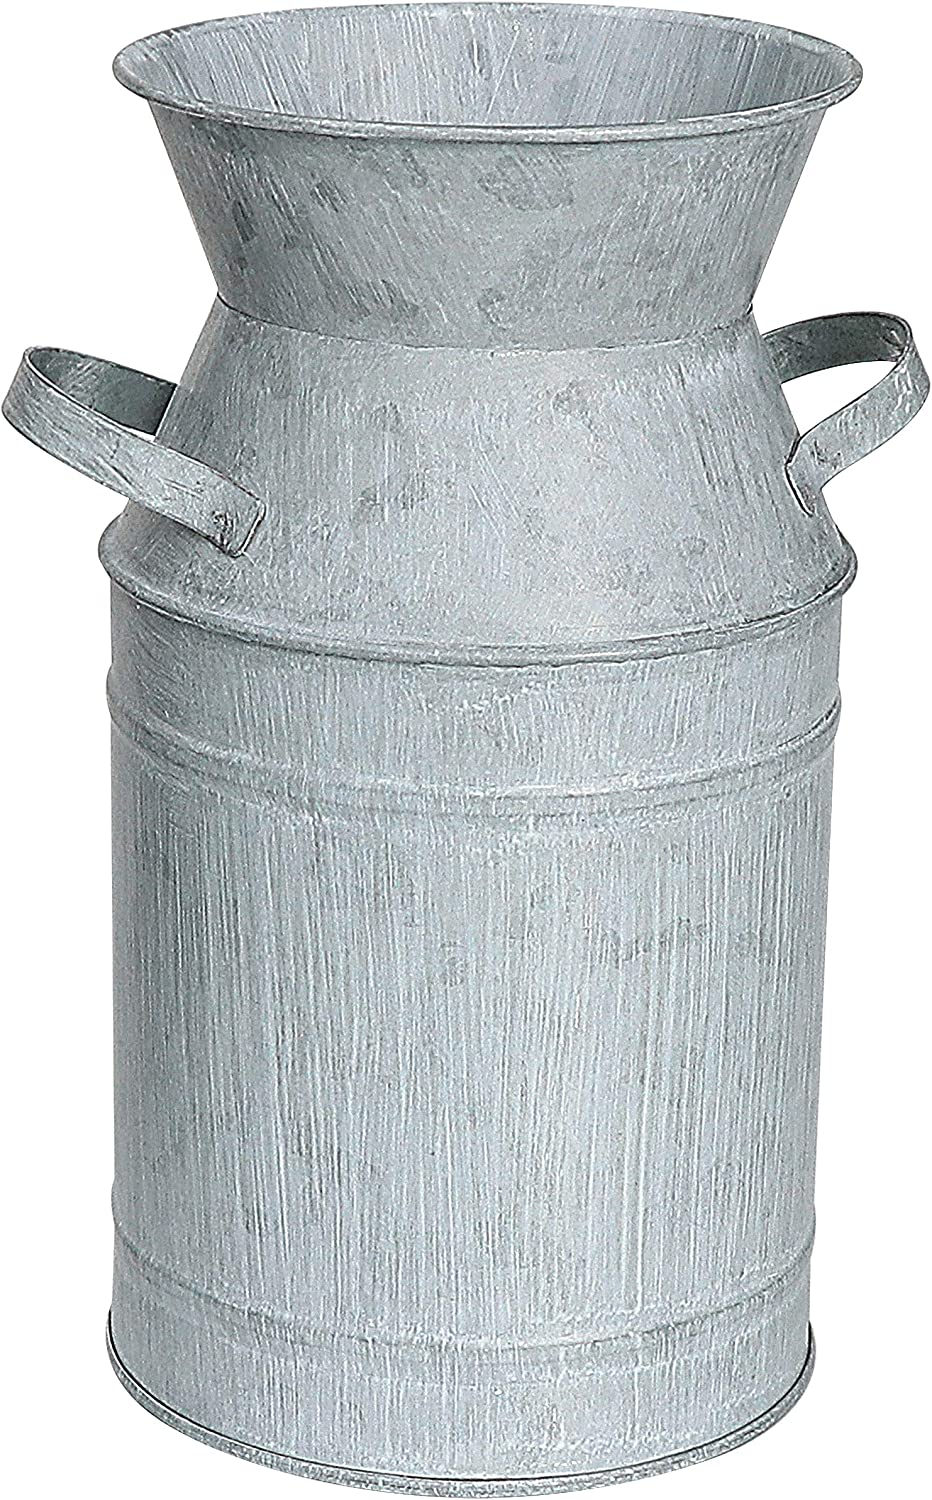 """Fovasen Metal Galvanized Flower Vase Milk Can Jug Bucket French Vintage Country Decorative with Handle for Rustic Farmhouse Home Decor Wedding Centerpiece Decor & Housewarming Gift -7.5"""" H /light grey"""